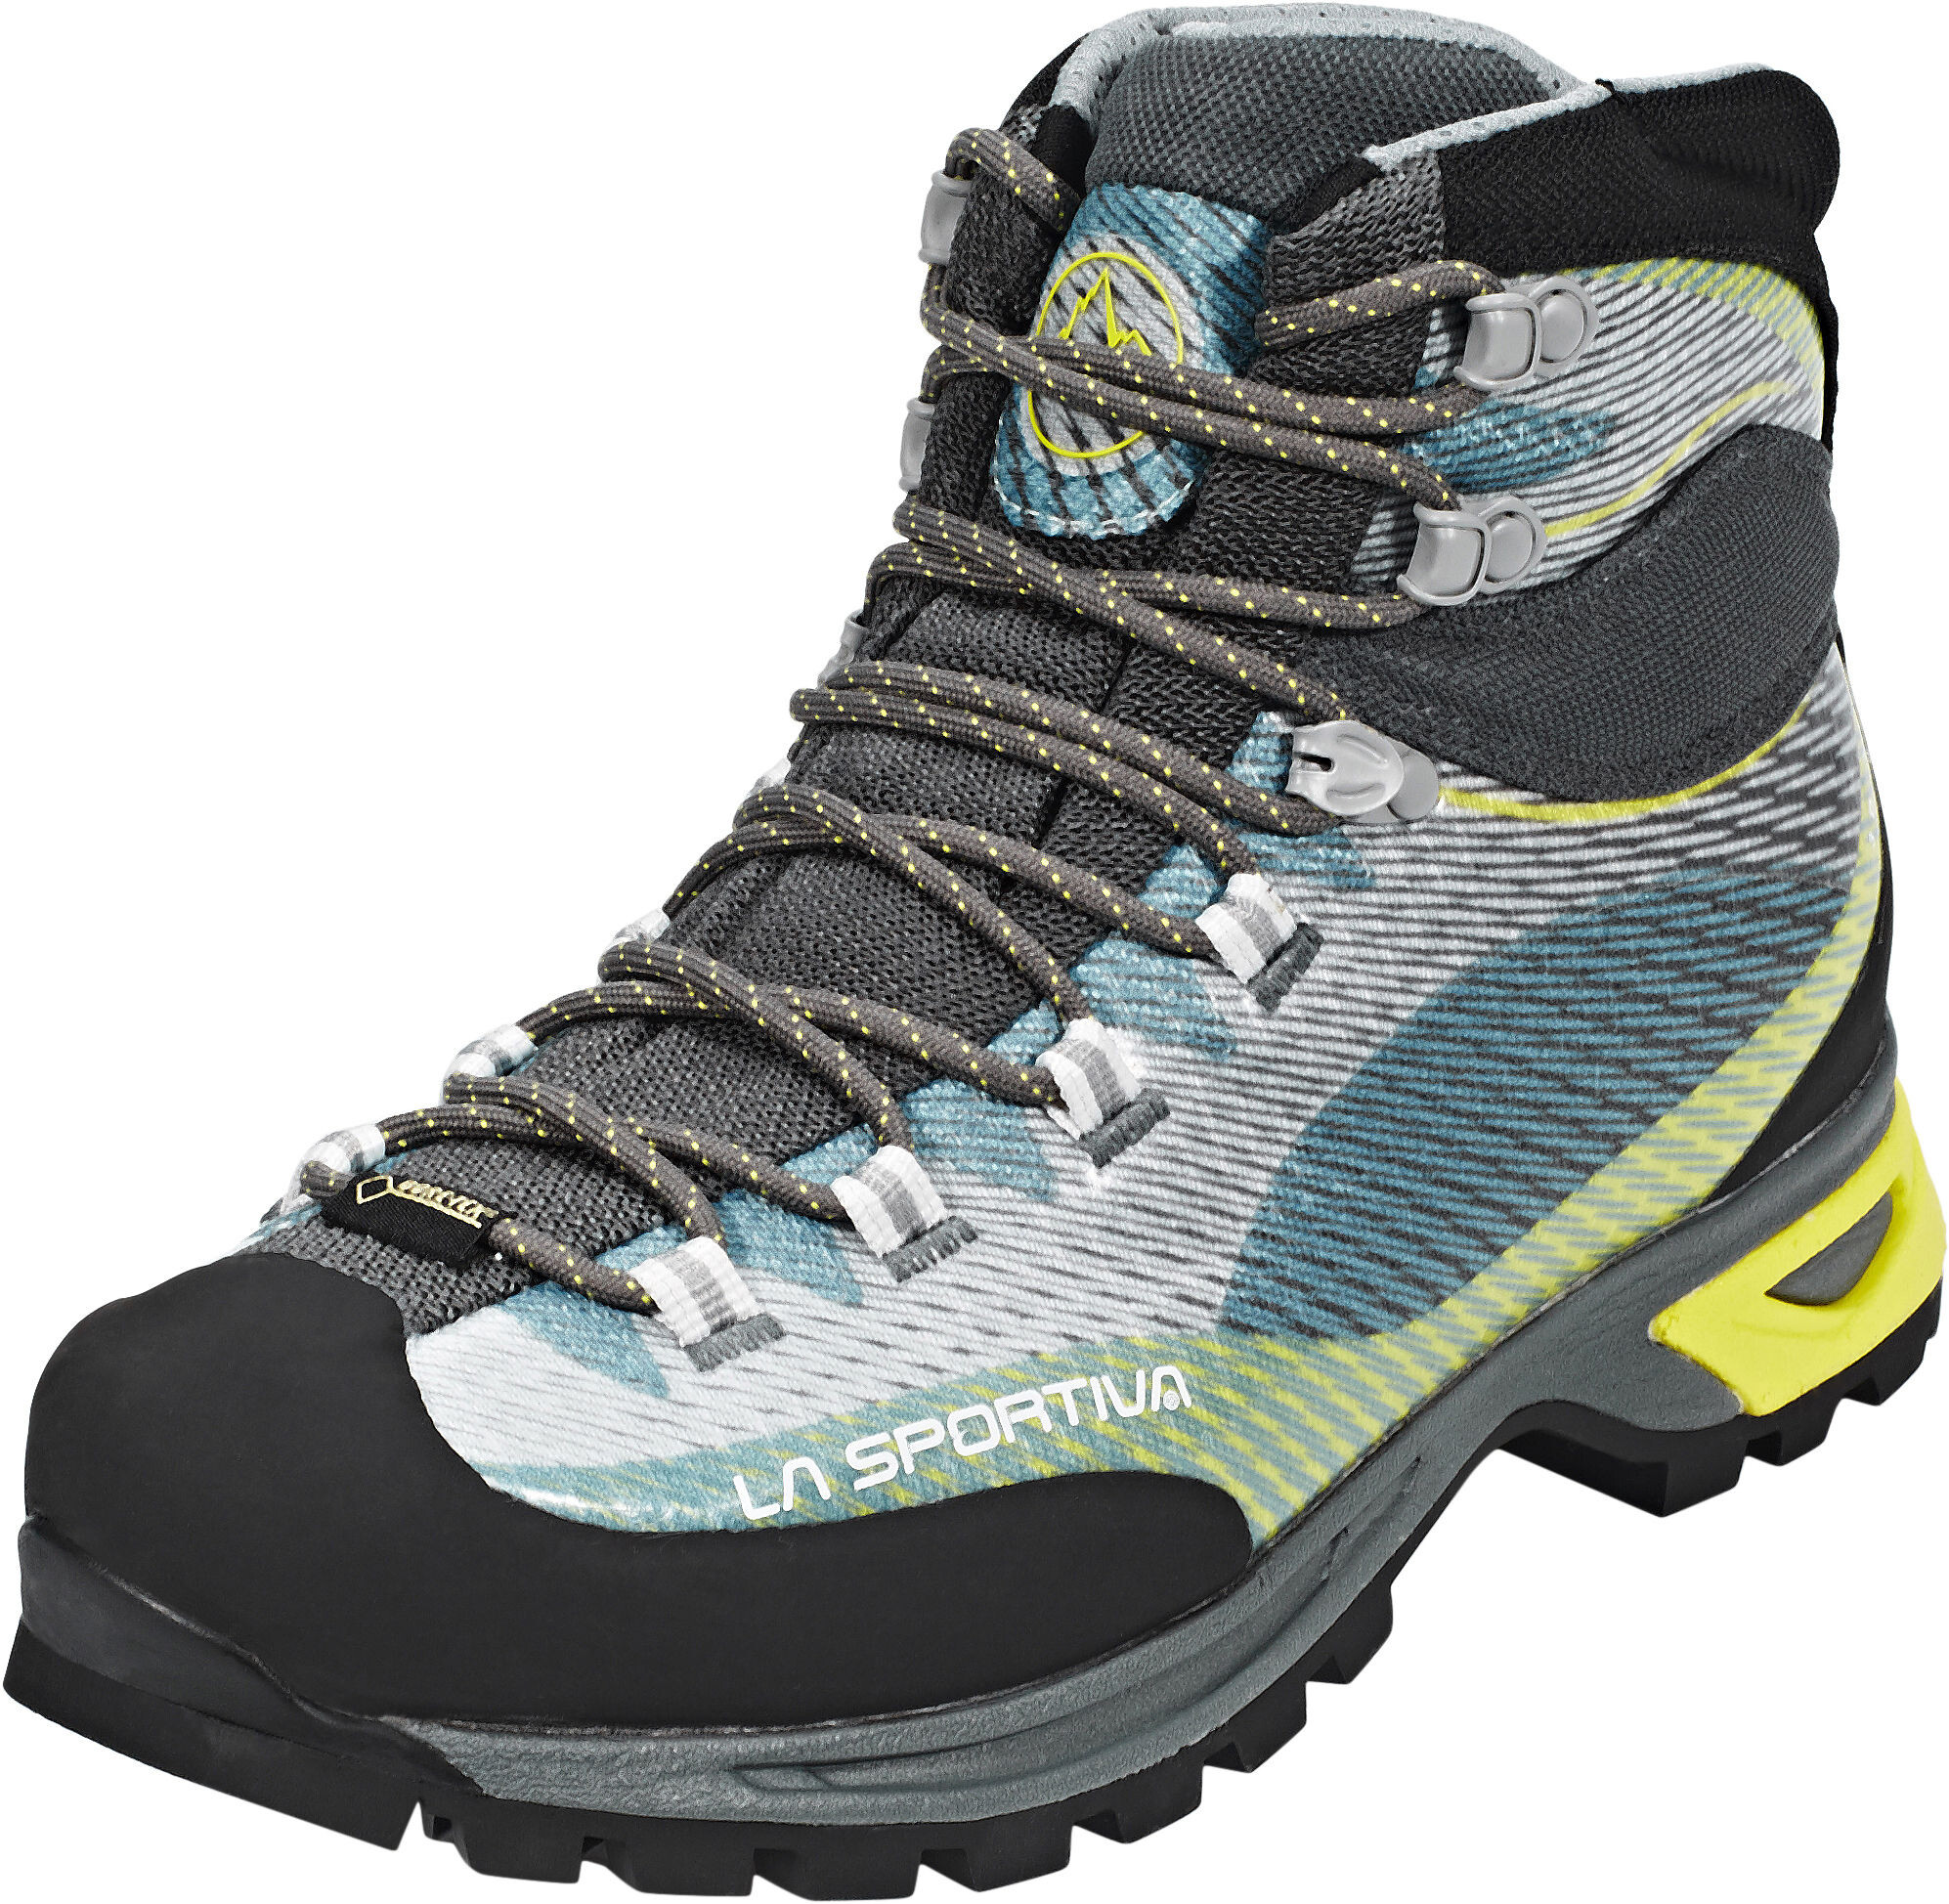 21aa7391f6d La Sportiva Trango TRK GTX Shoes Women green bay